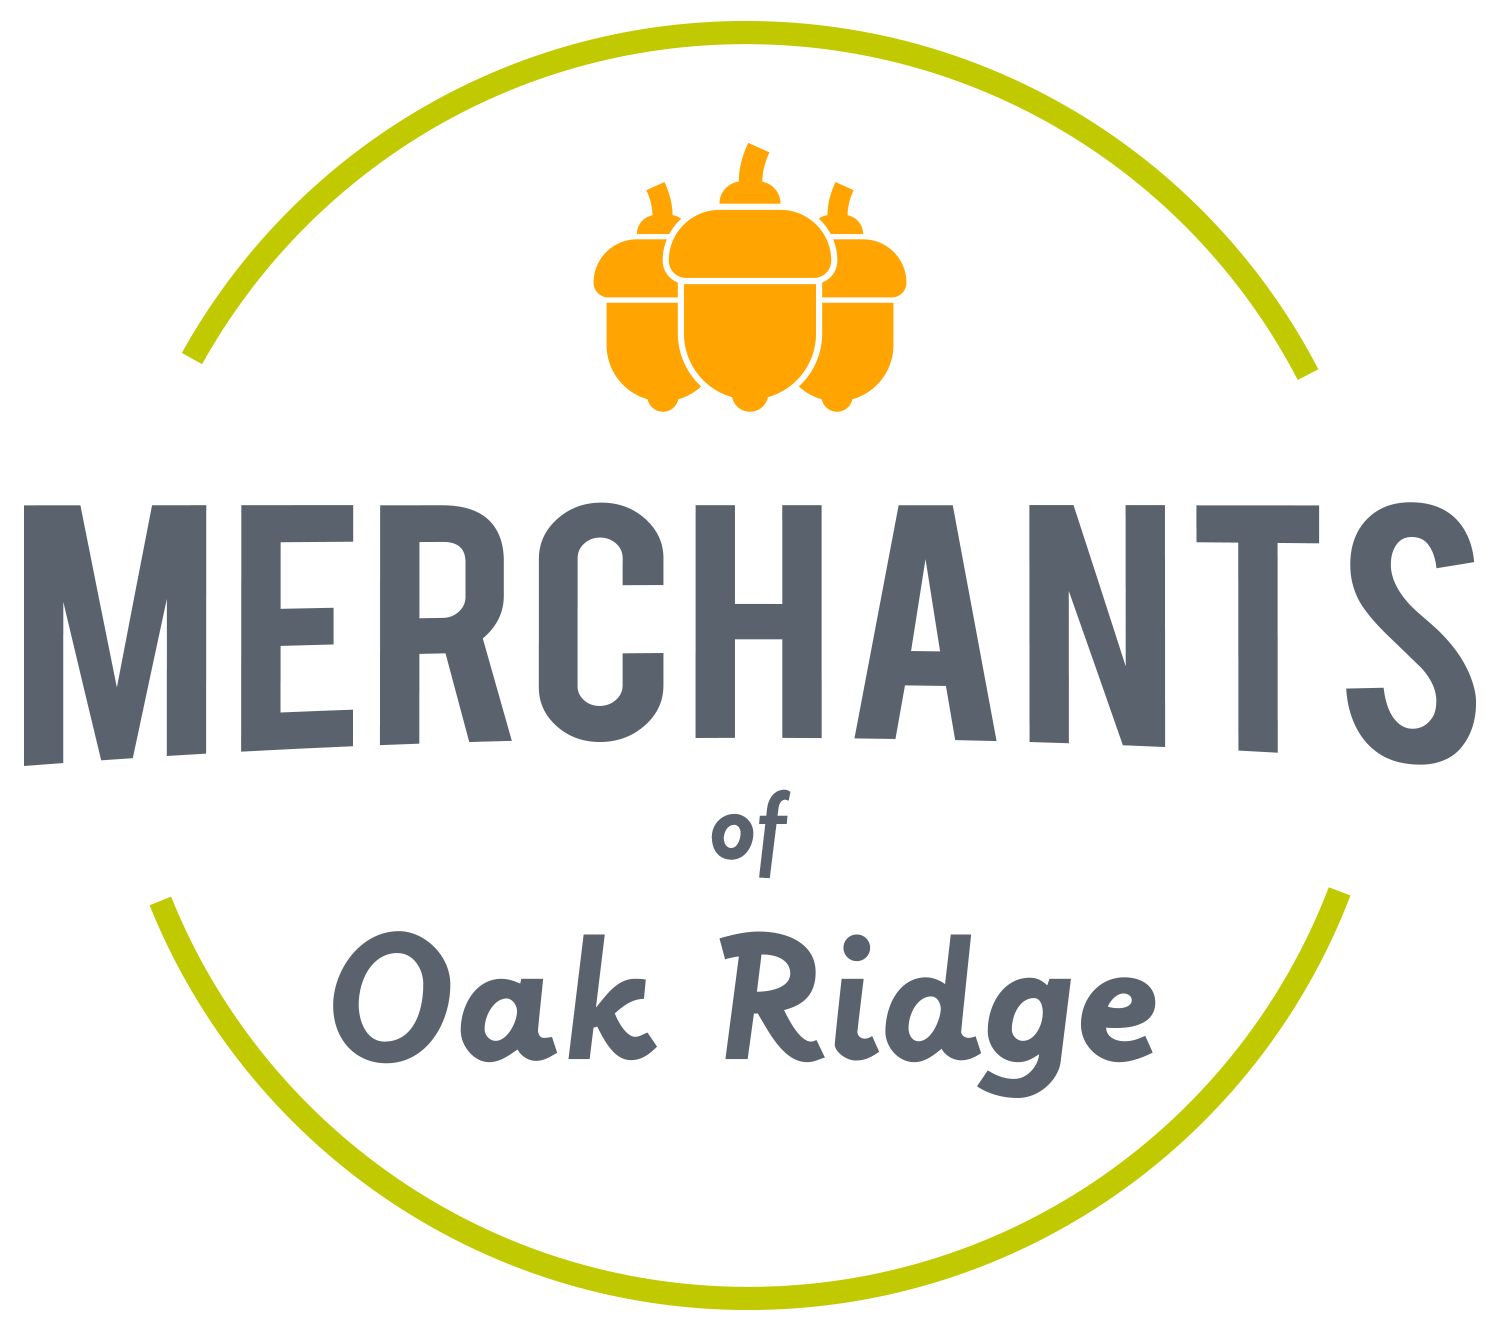 Merchants of Oak Ridge